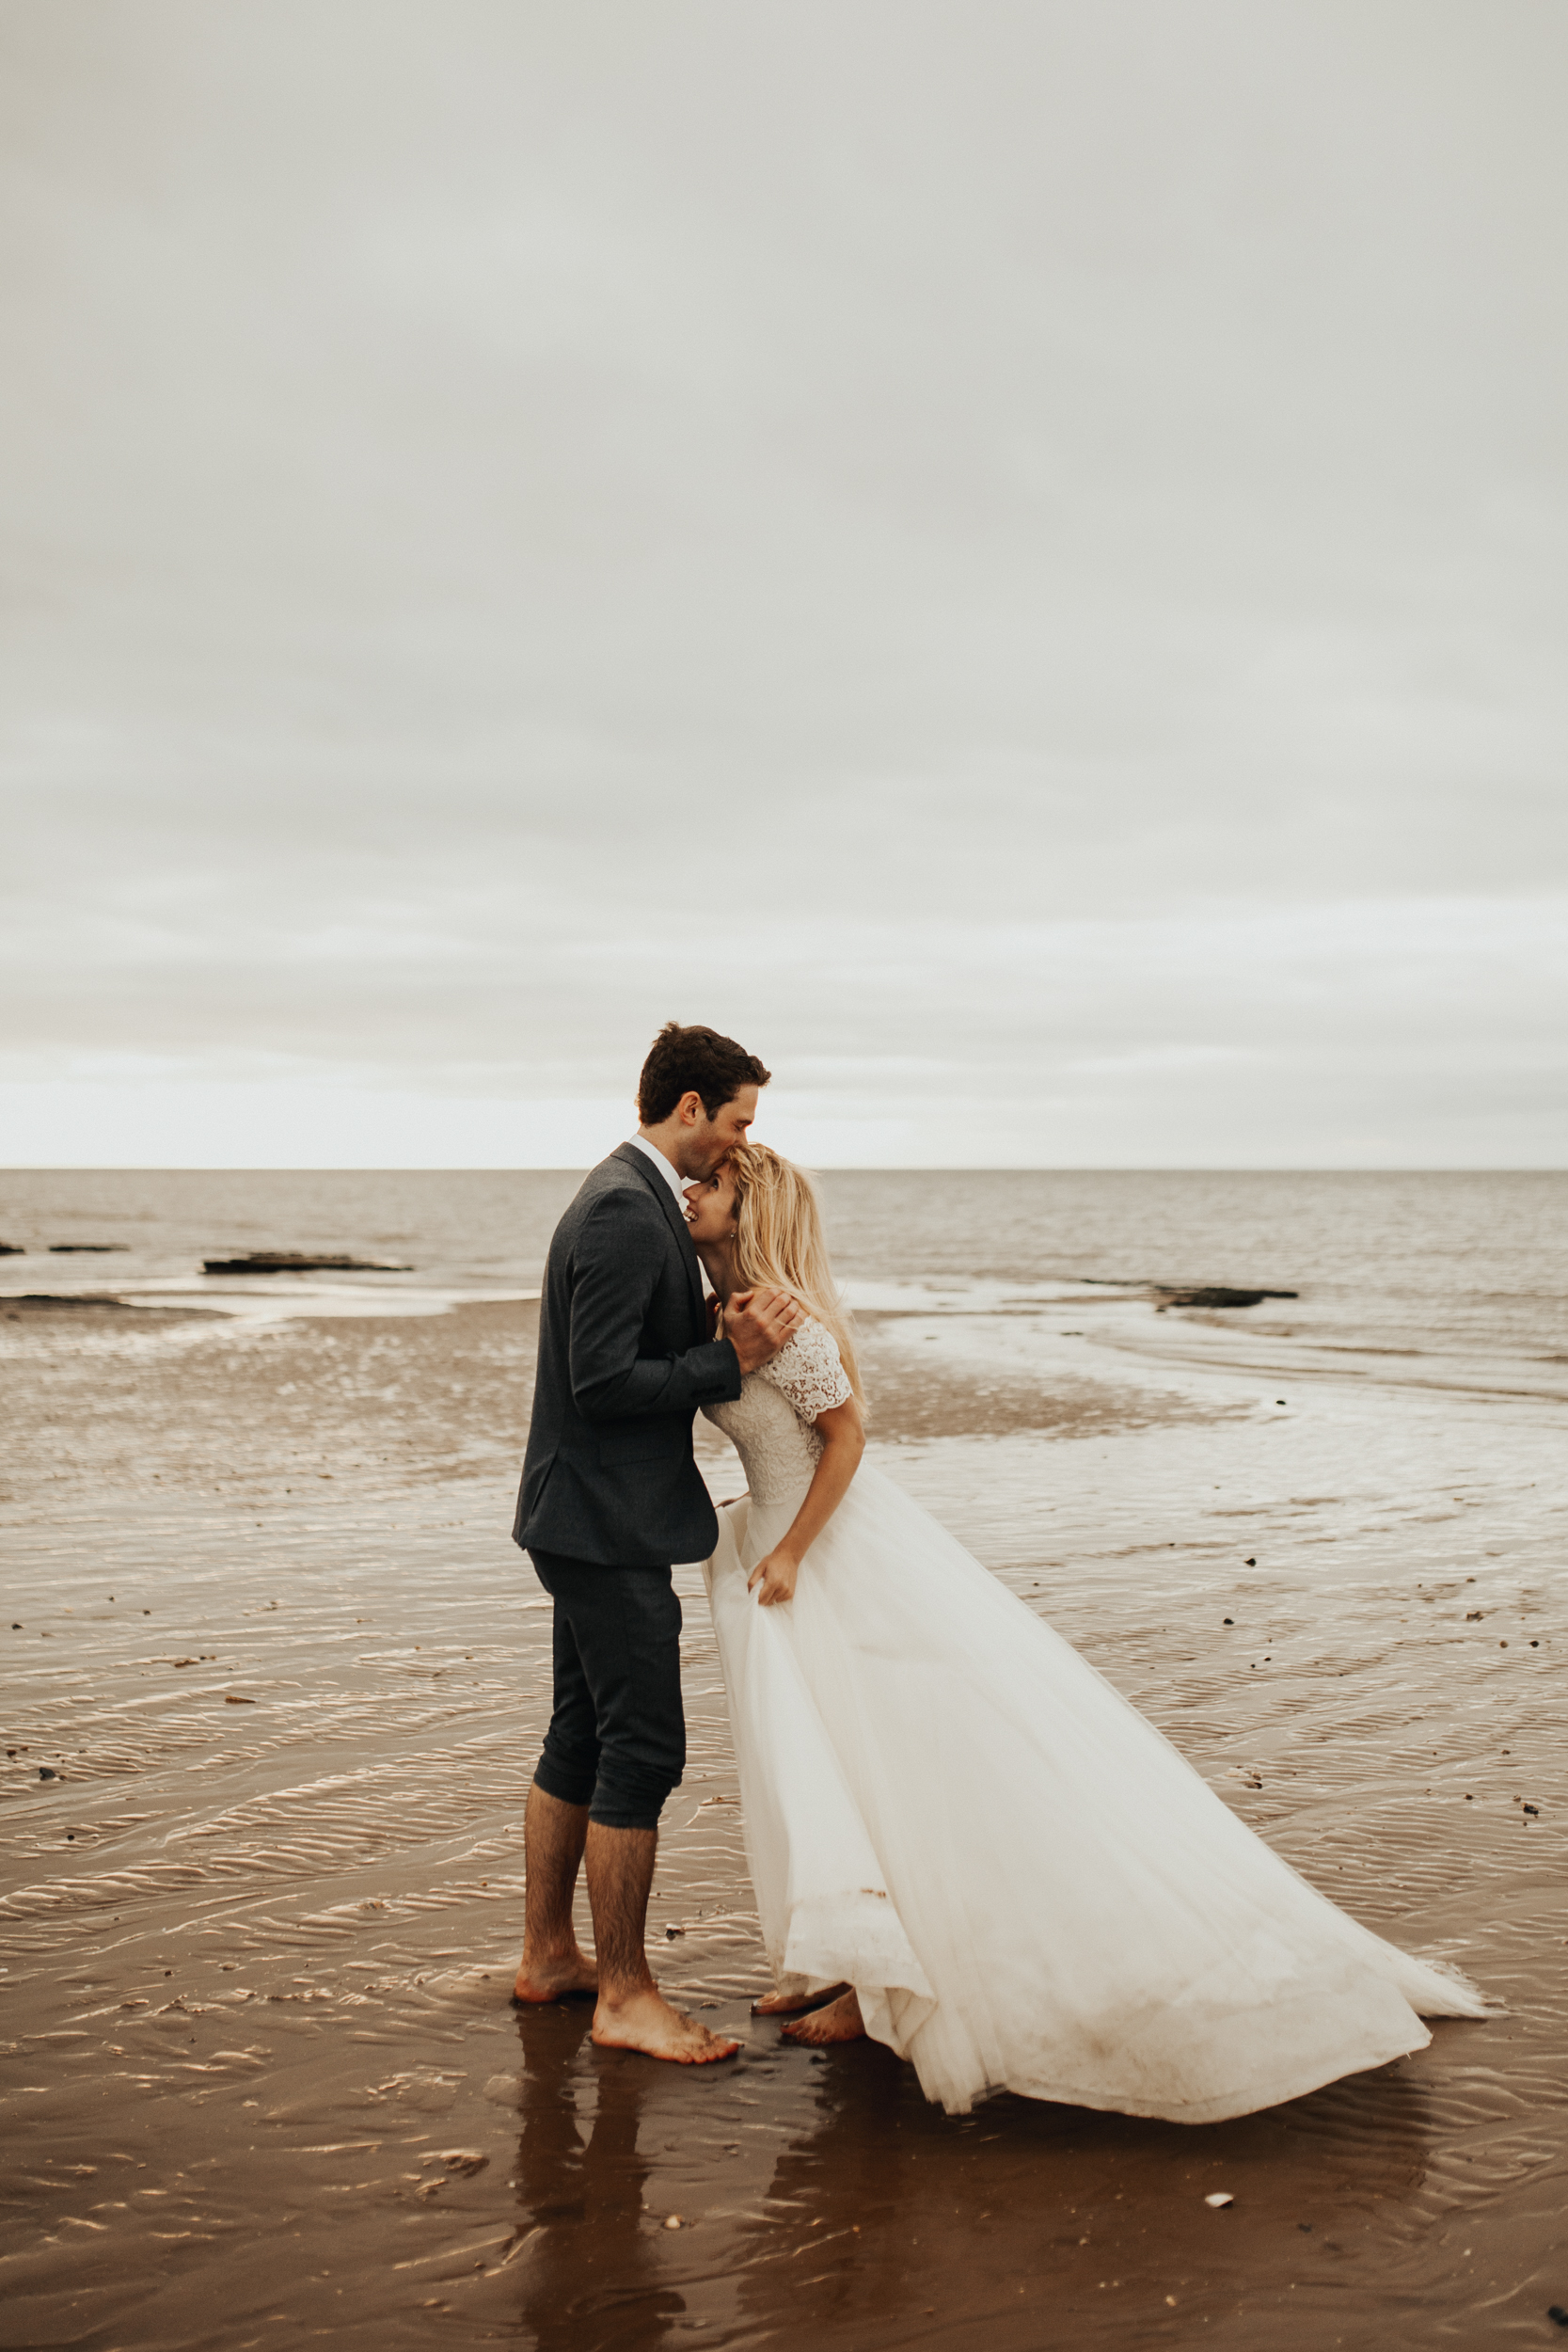 Claire-Clive-Wedding-Norfolk-Beach-Session-Love-Darina-Stoda-Photography-138.jpg